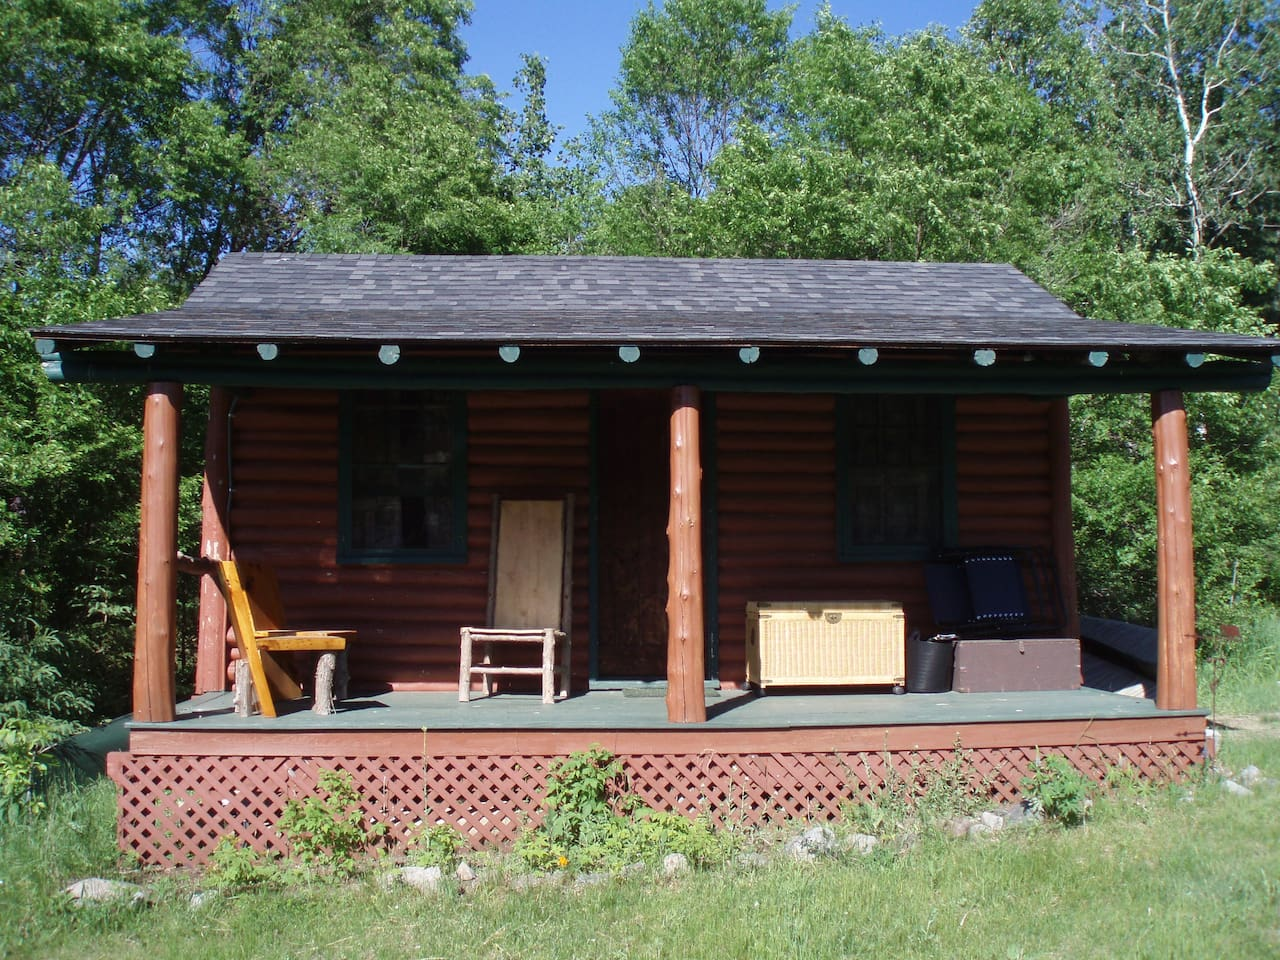 Authentic adirondack log cabin cabins for rent in wilmington for Wilmington ny cabin rentals